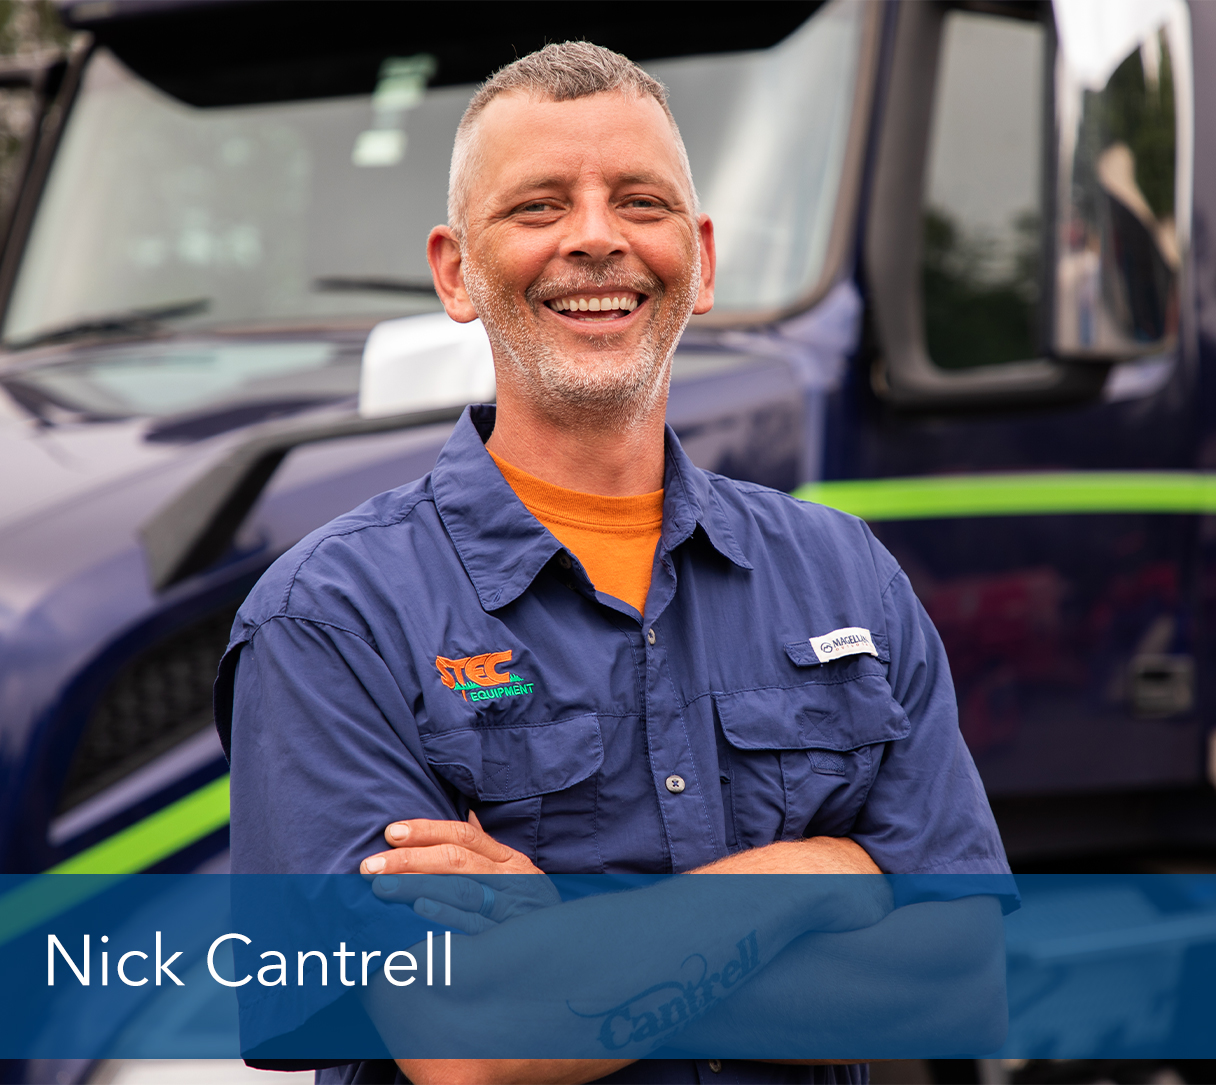 <b>Nick Cantrell</b>, Shop - Driver and Delivery <br><p></p>